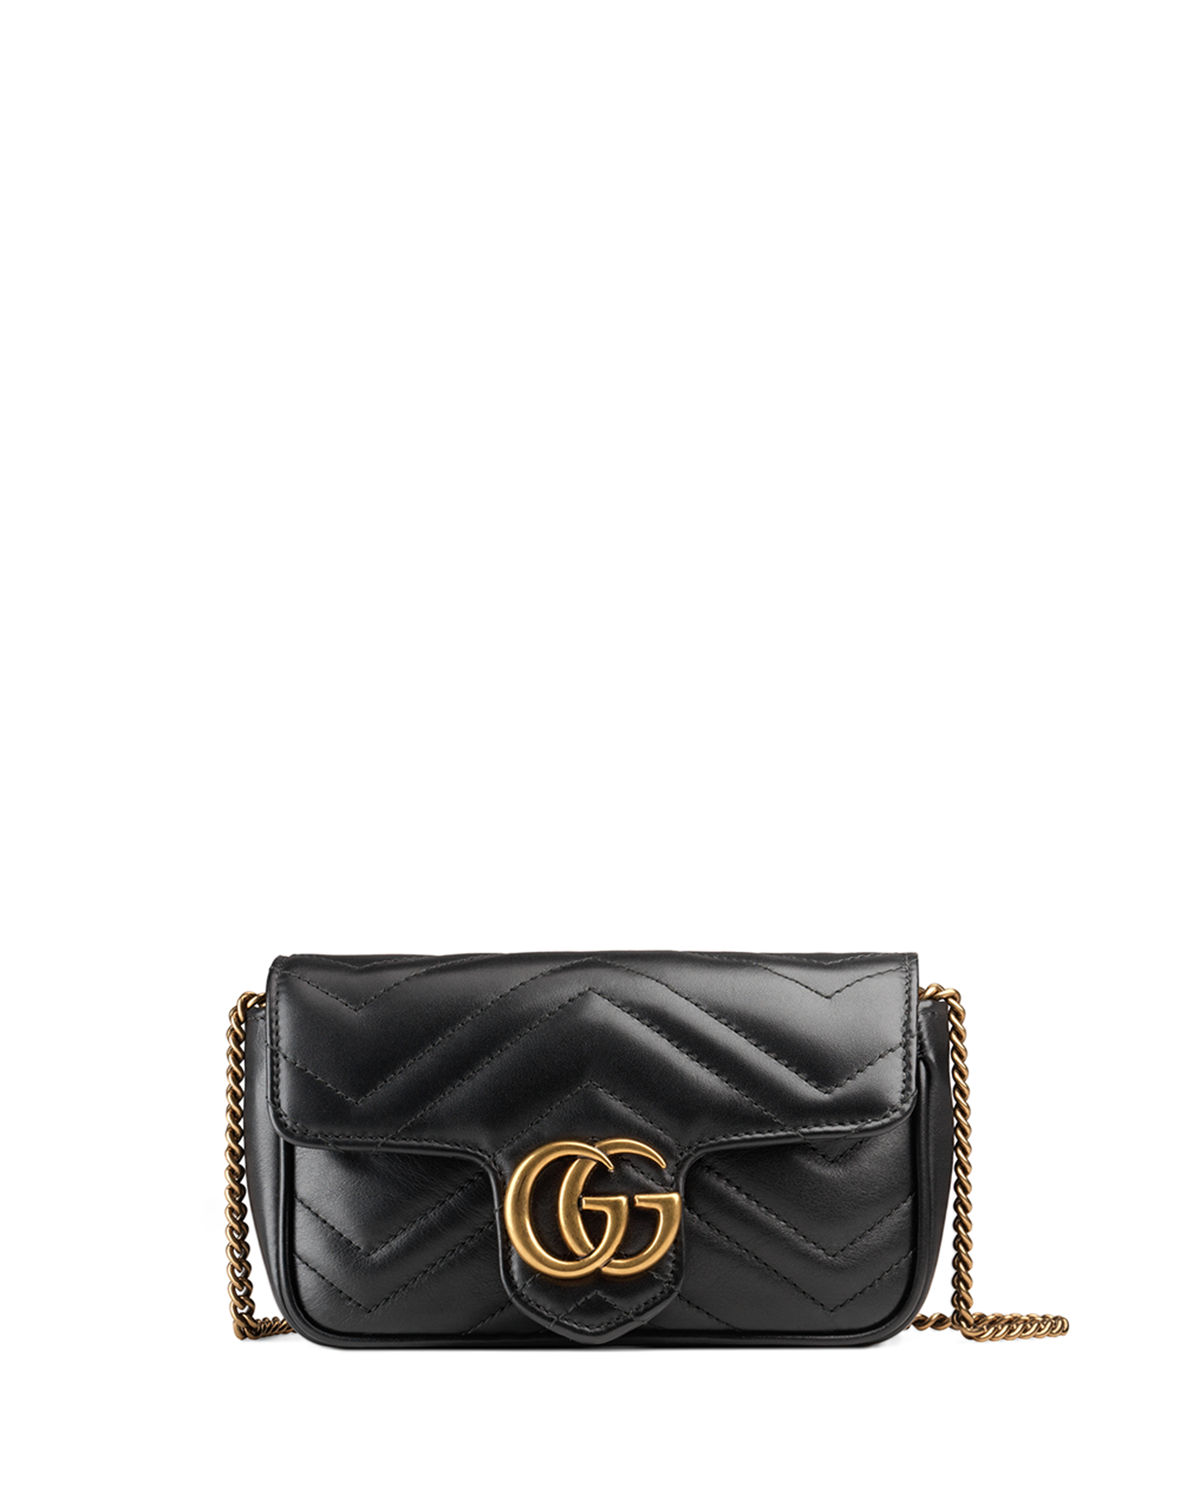 23bb71d8050e Gucci GG Marmont Matelasse Leather Super Mini Bag | Neiman Marcus